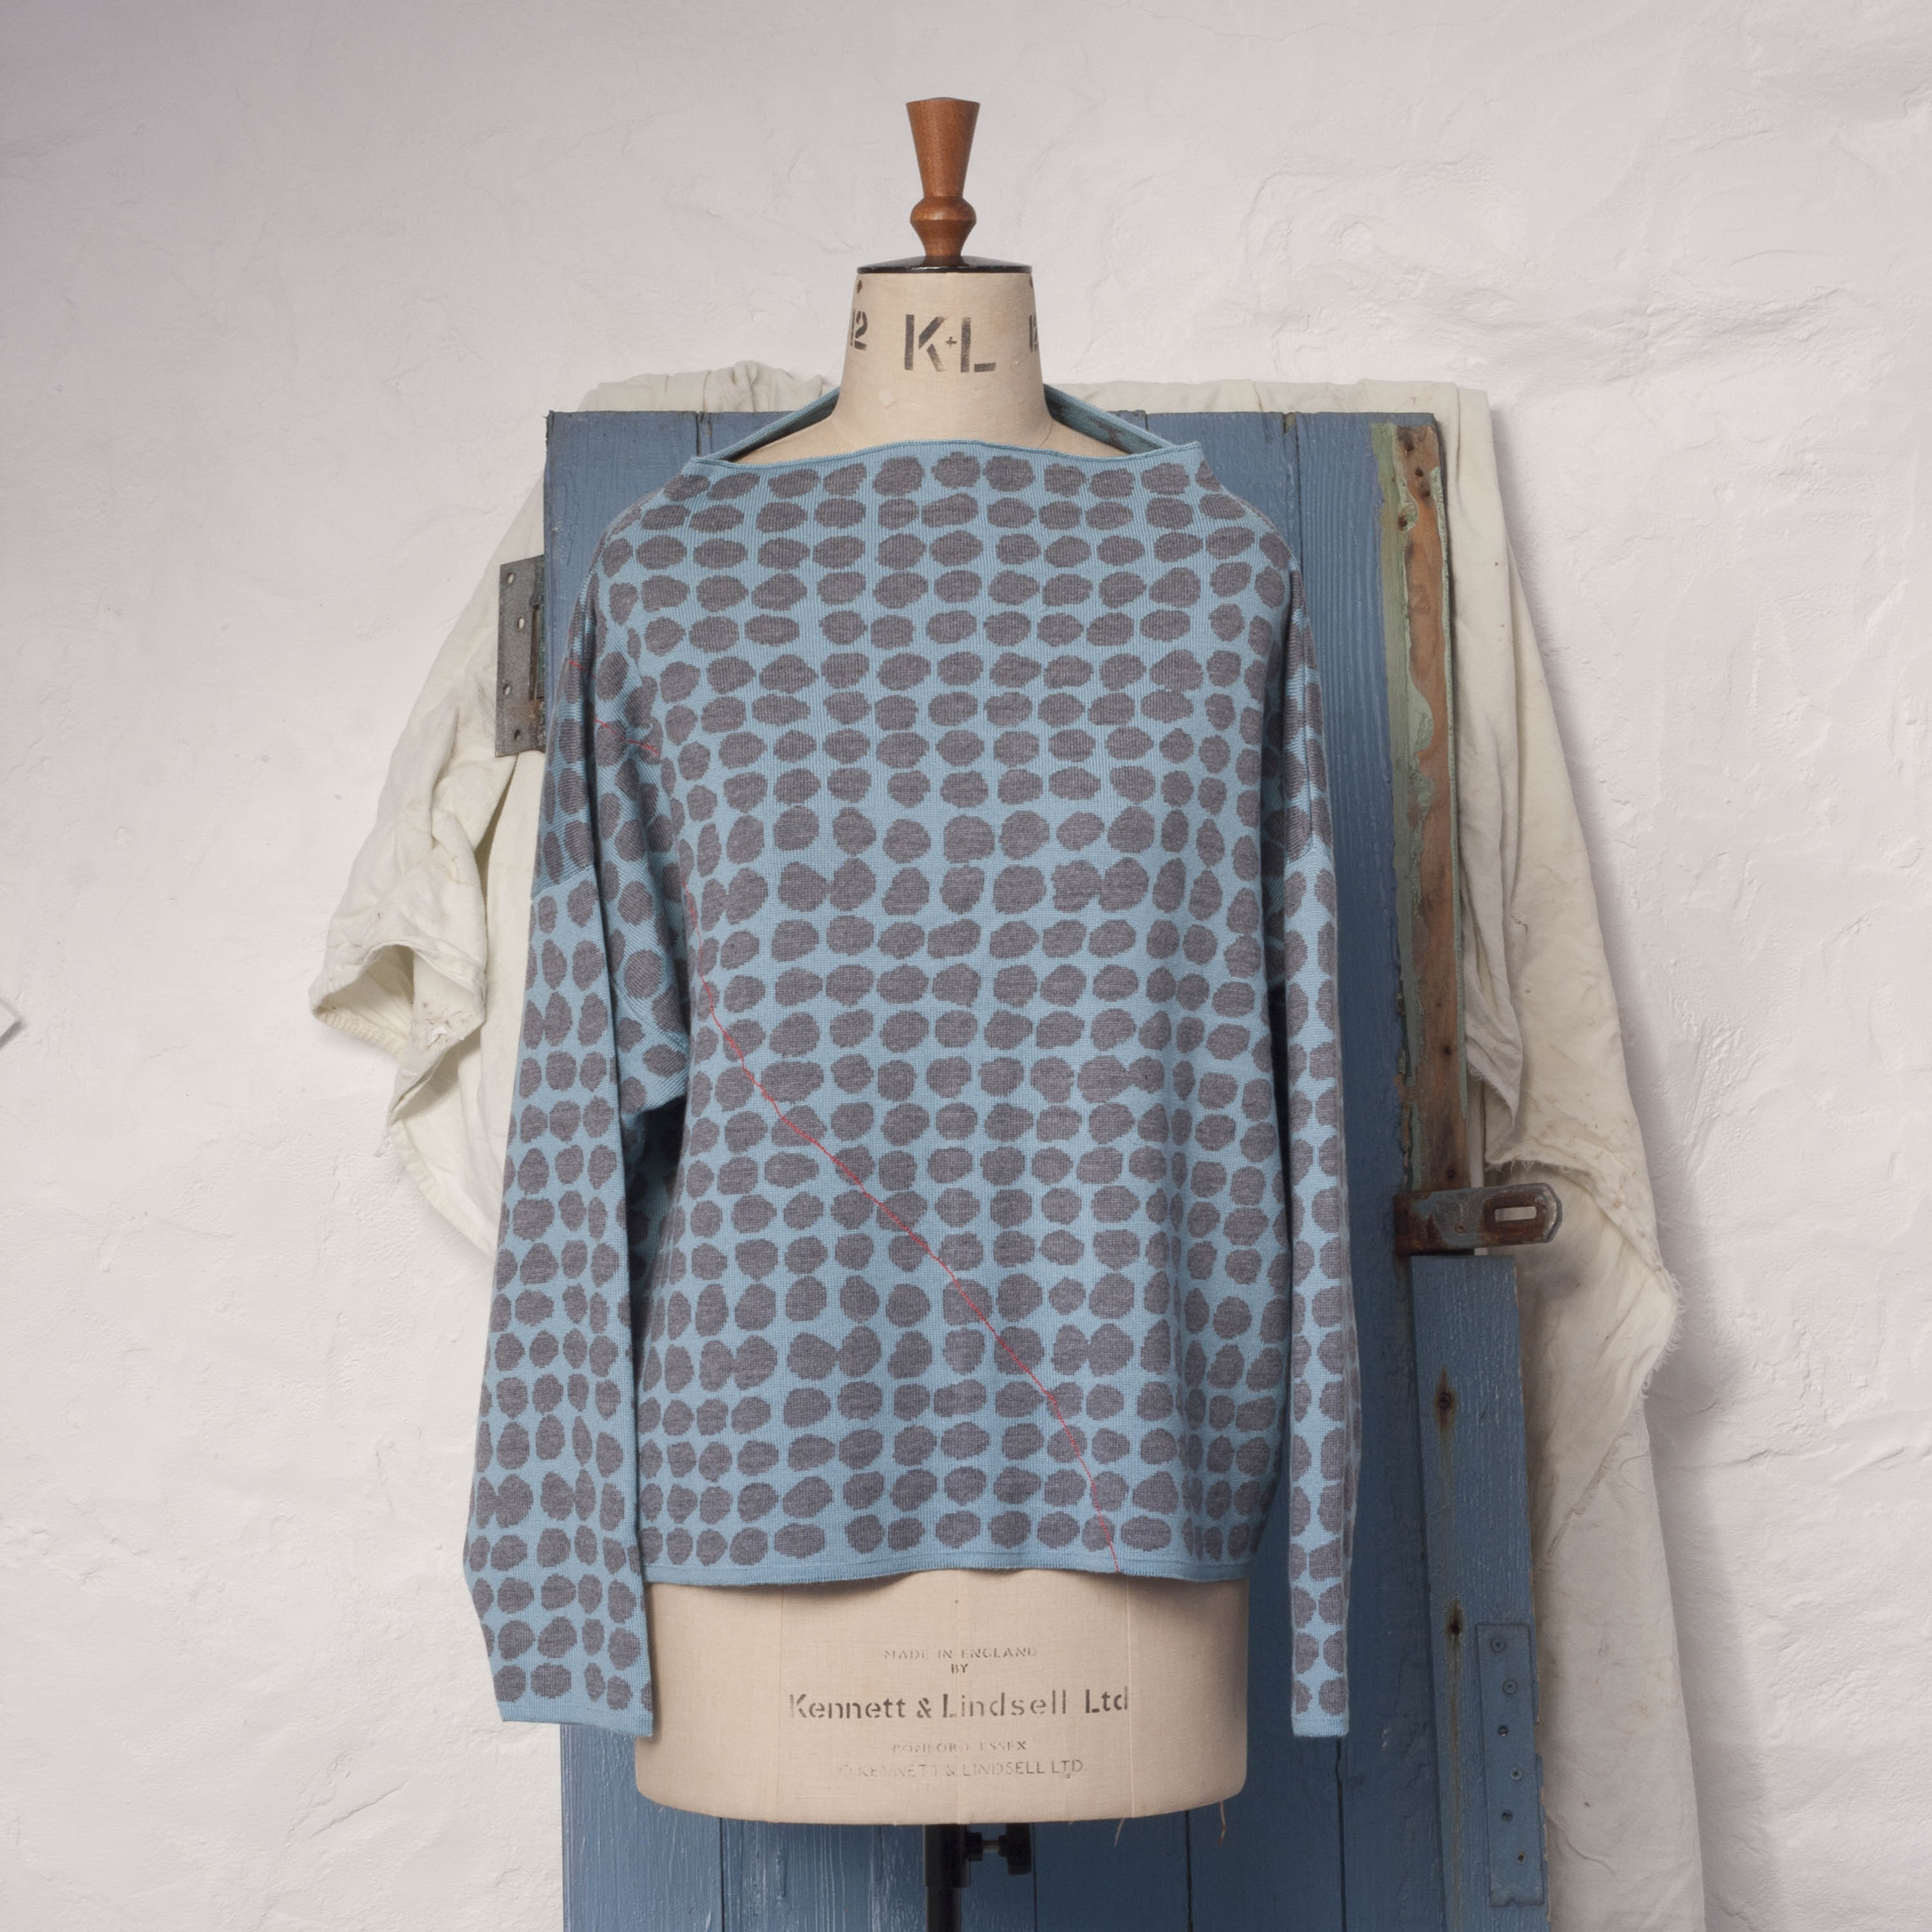 Ebb-stanes contemporary Scottish jumper. A pattern of pebbles in blue and marl, with coral individually drawn line